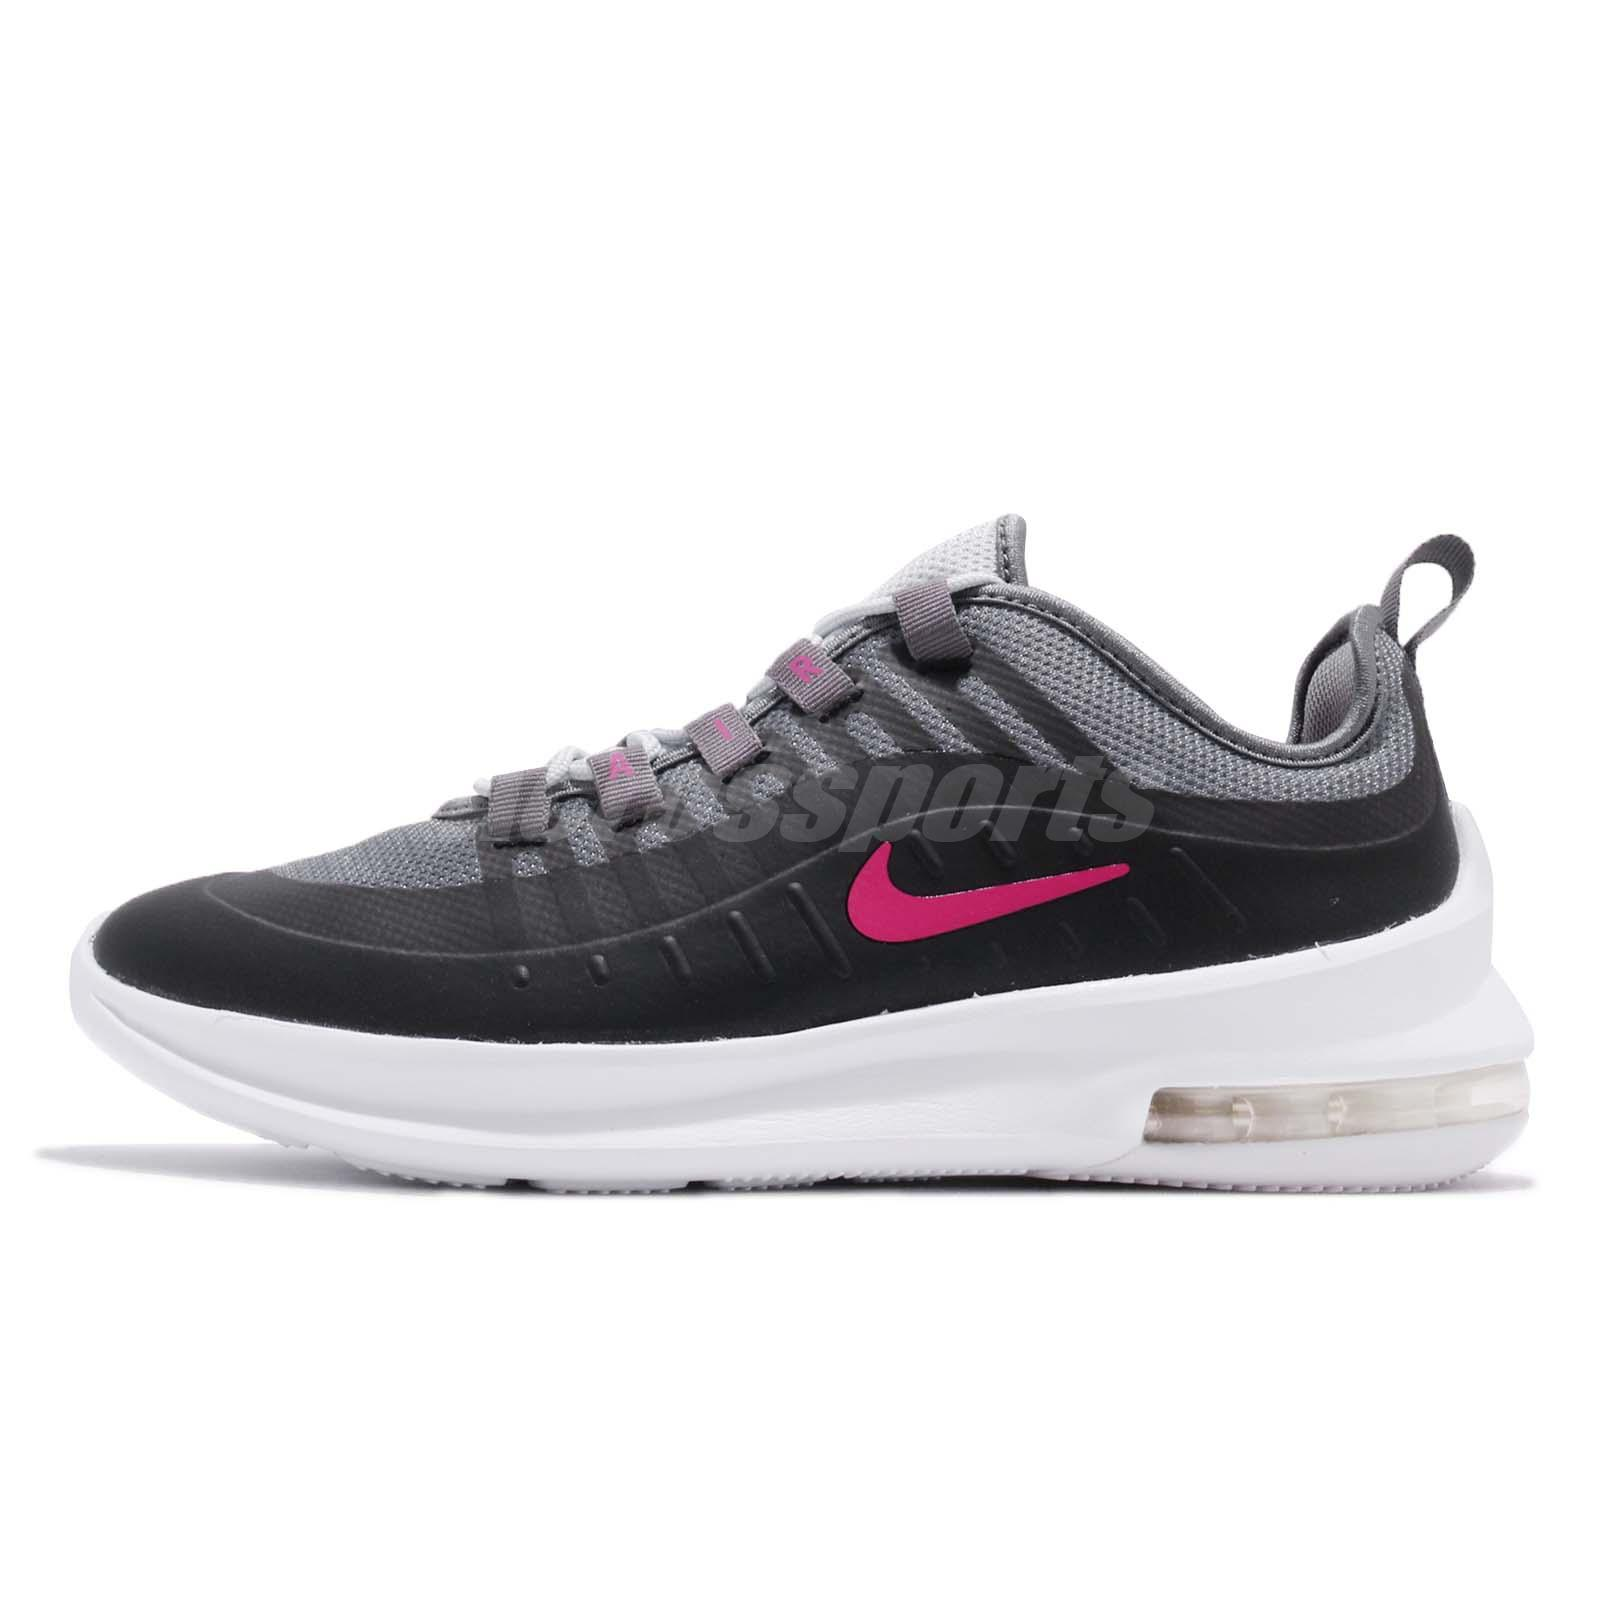 469fbcb575 Nike Air Max Axis GS Black Pink Kid Youth Women Running Shoes Sneaker  AH5226-001